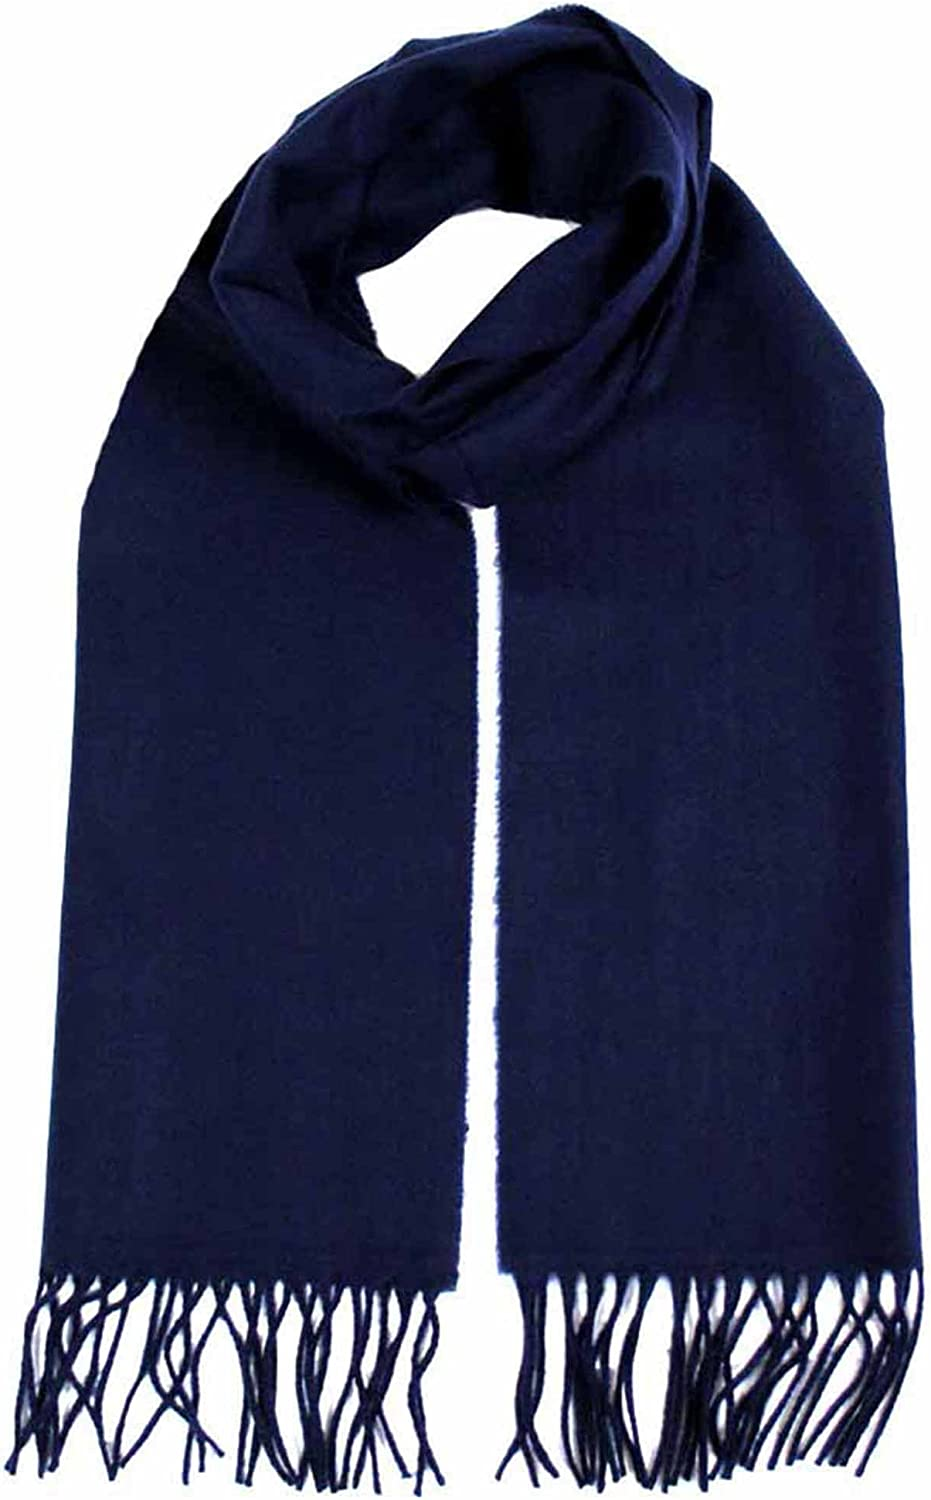 Classic Softer Than Cashmere Unisex Scarf